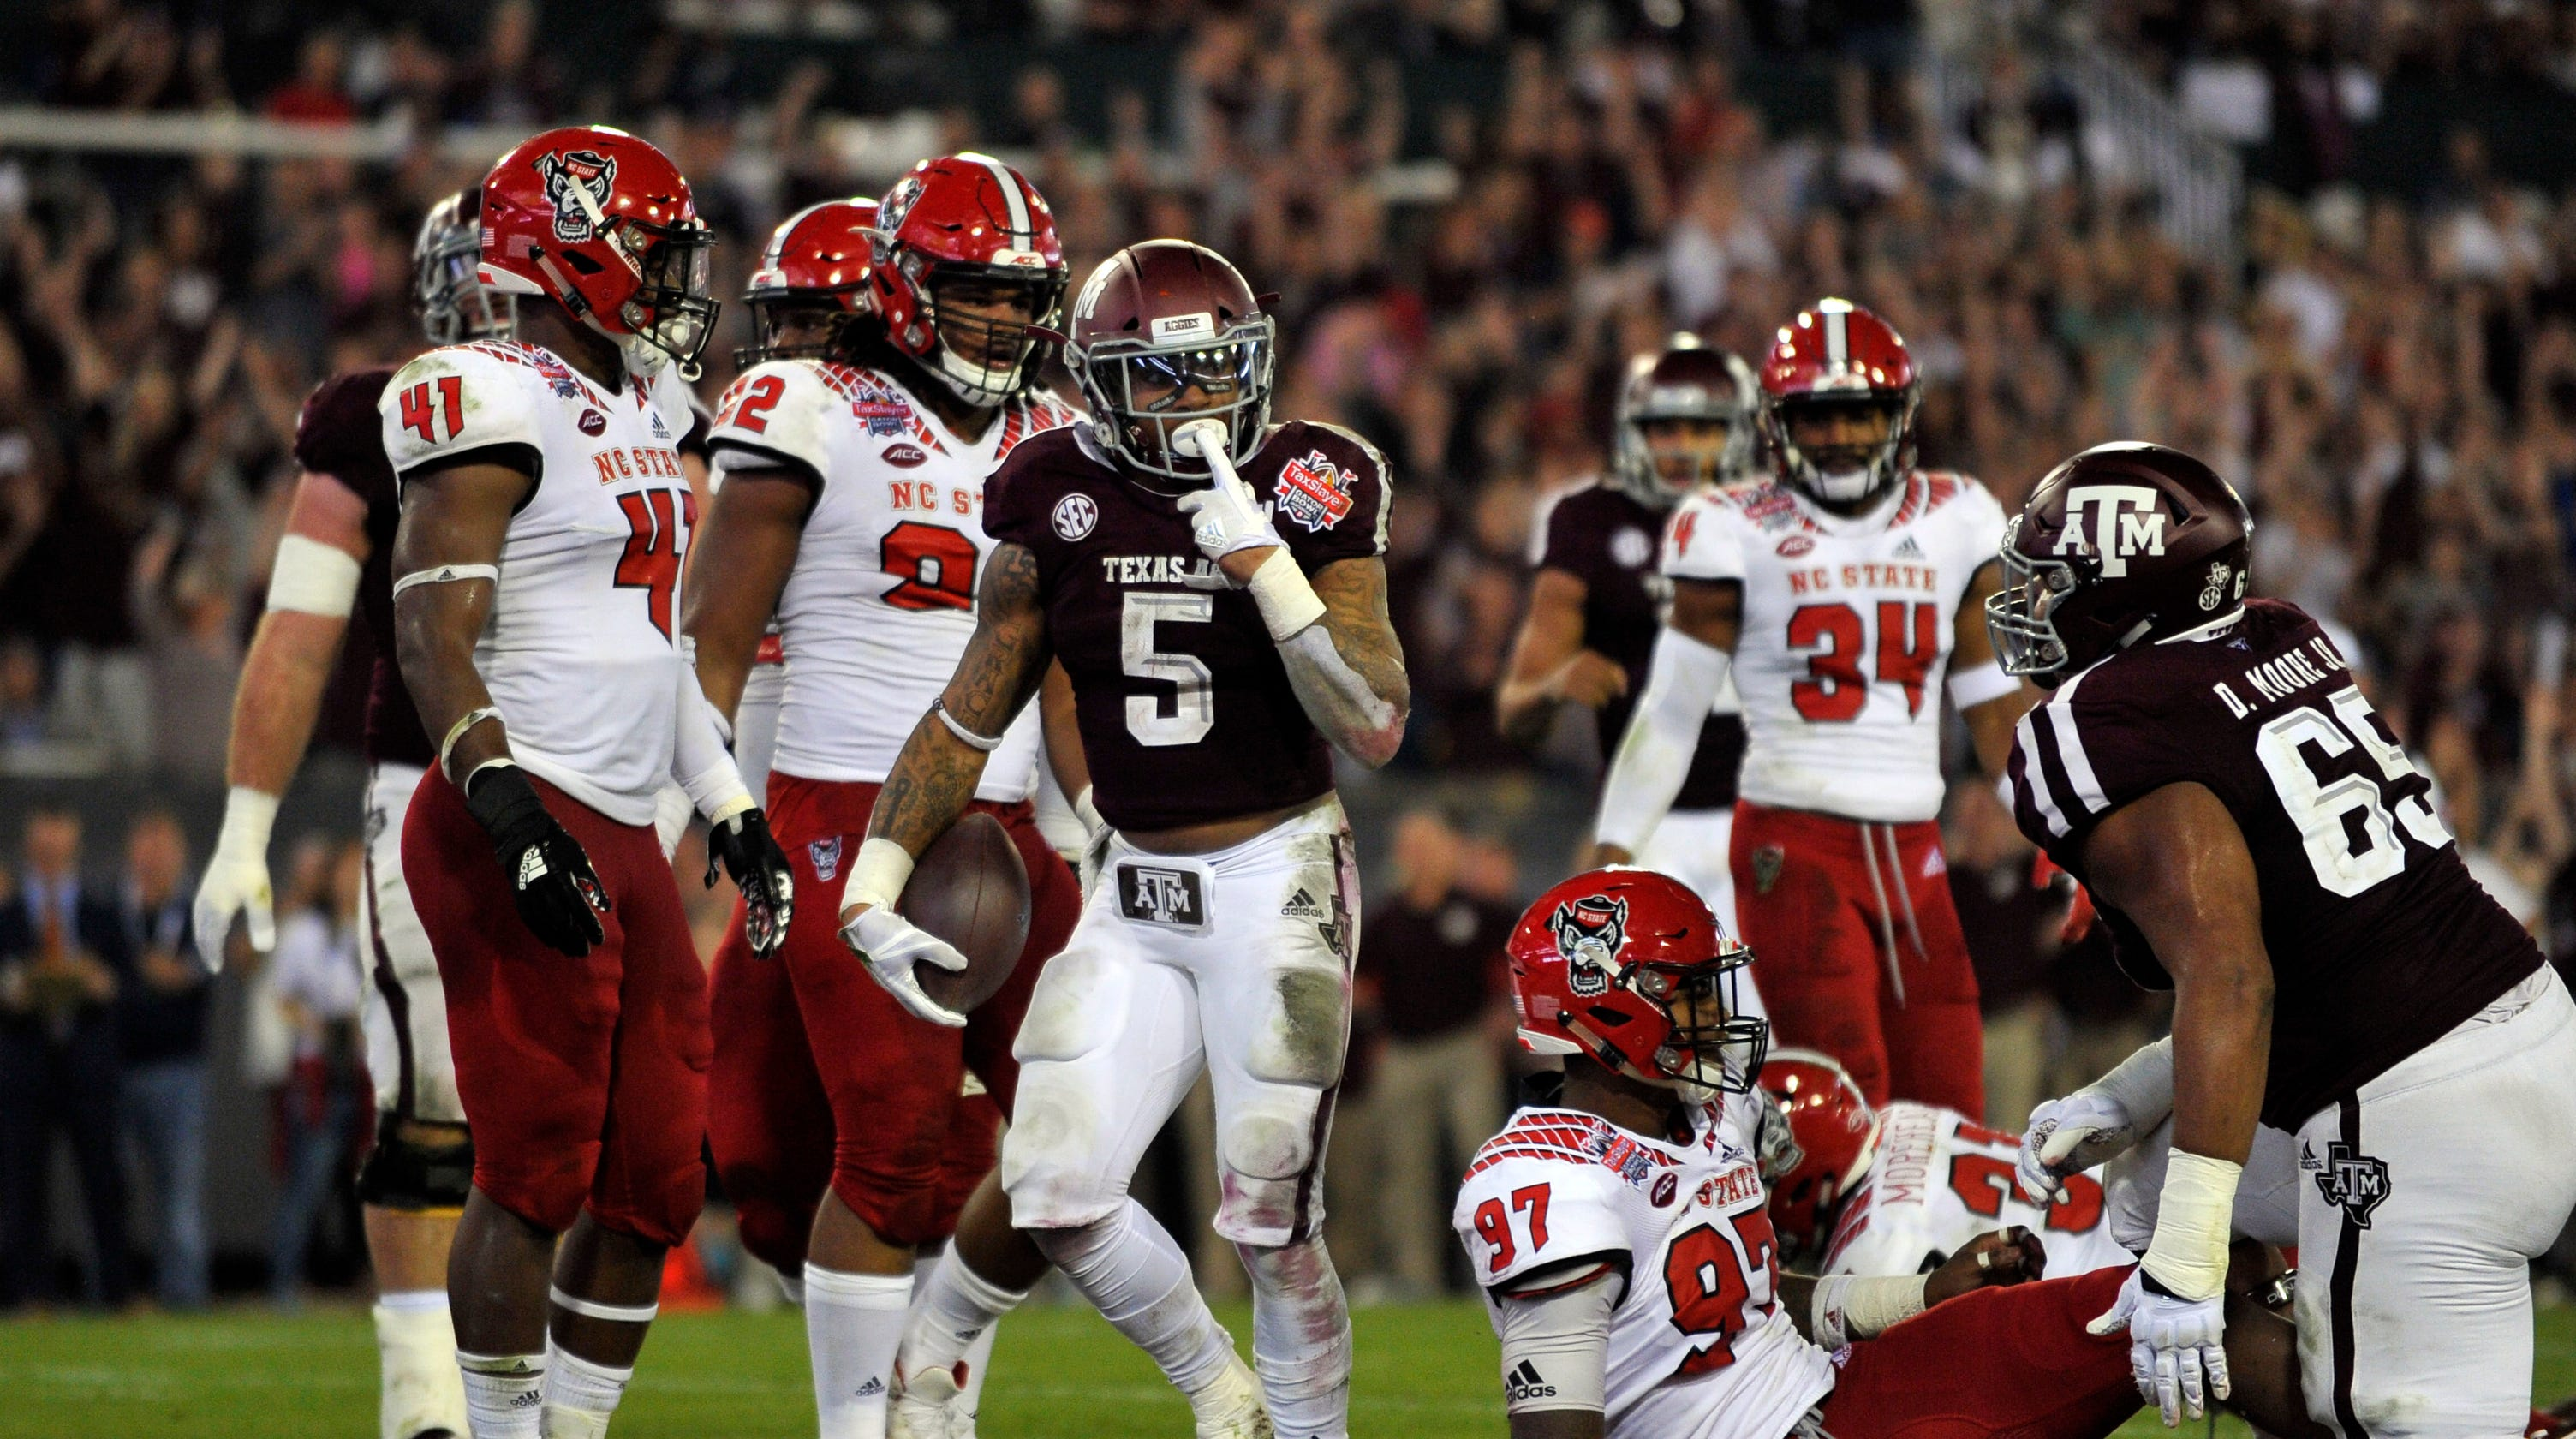 official photos cdc08 4dee5 Gator Bowl  Trayveon Williams powers Texas A M past NC State